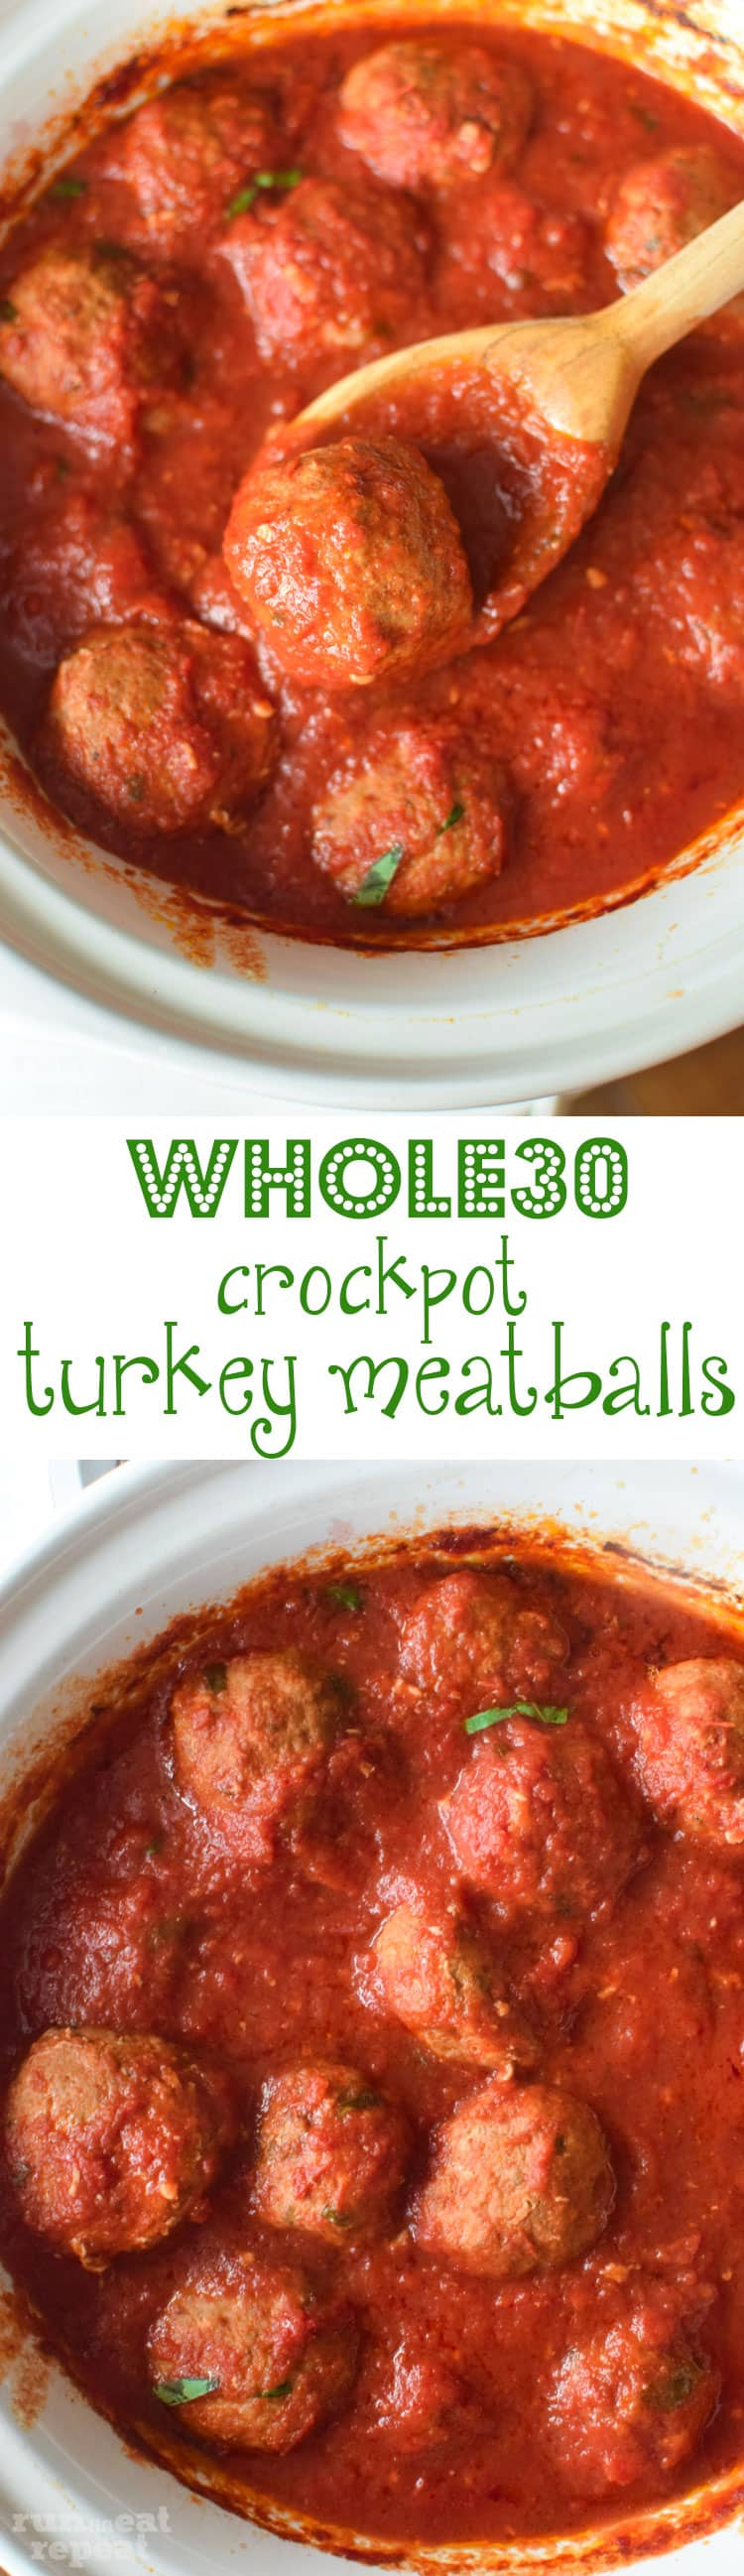 This is my favorite recipe for crockpot turkey meatballs— spiced just right, perfectly tender, packed with flavor, and incredibly simple to make! And Whole30 approved! Find the recipe at runlifteatrepeat.com.